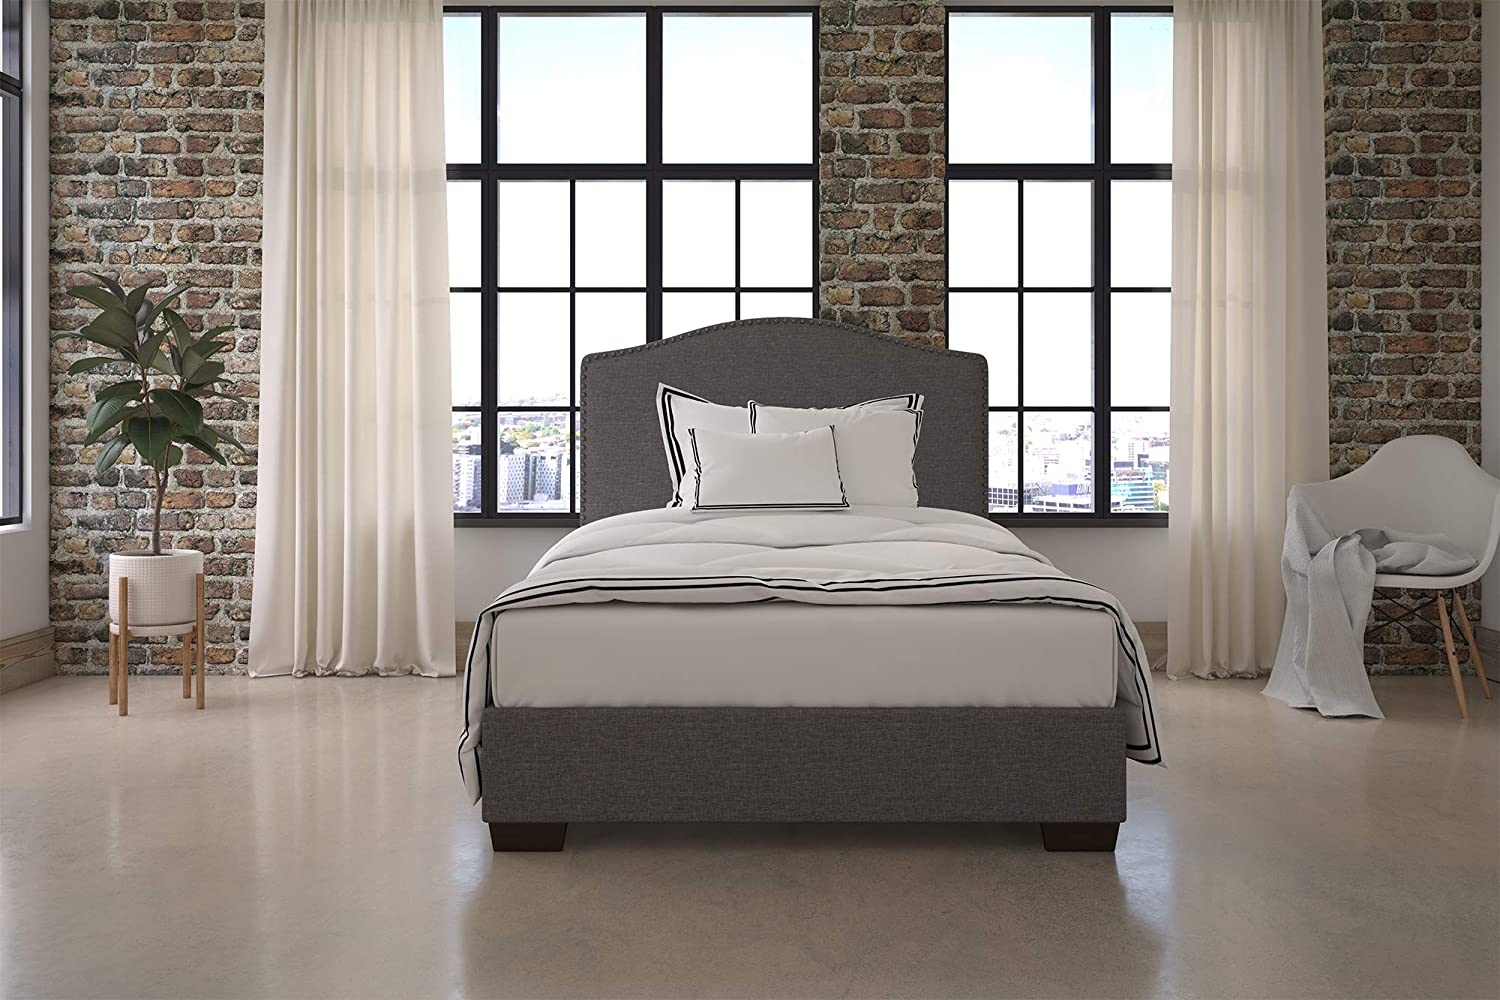 Amazon Com Dhp Gavin Upholstered Bed With Nailhead Trim And Wood Slat Support System Full Size Grey Linen Furniture Decor